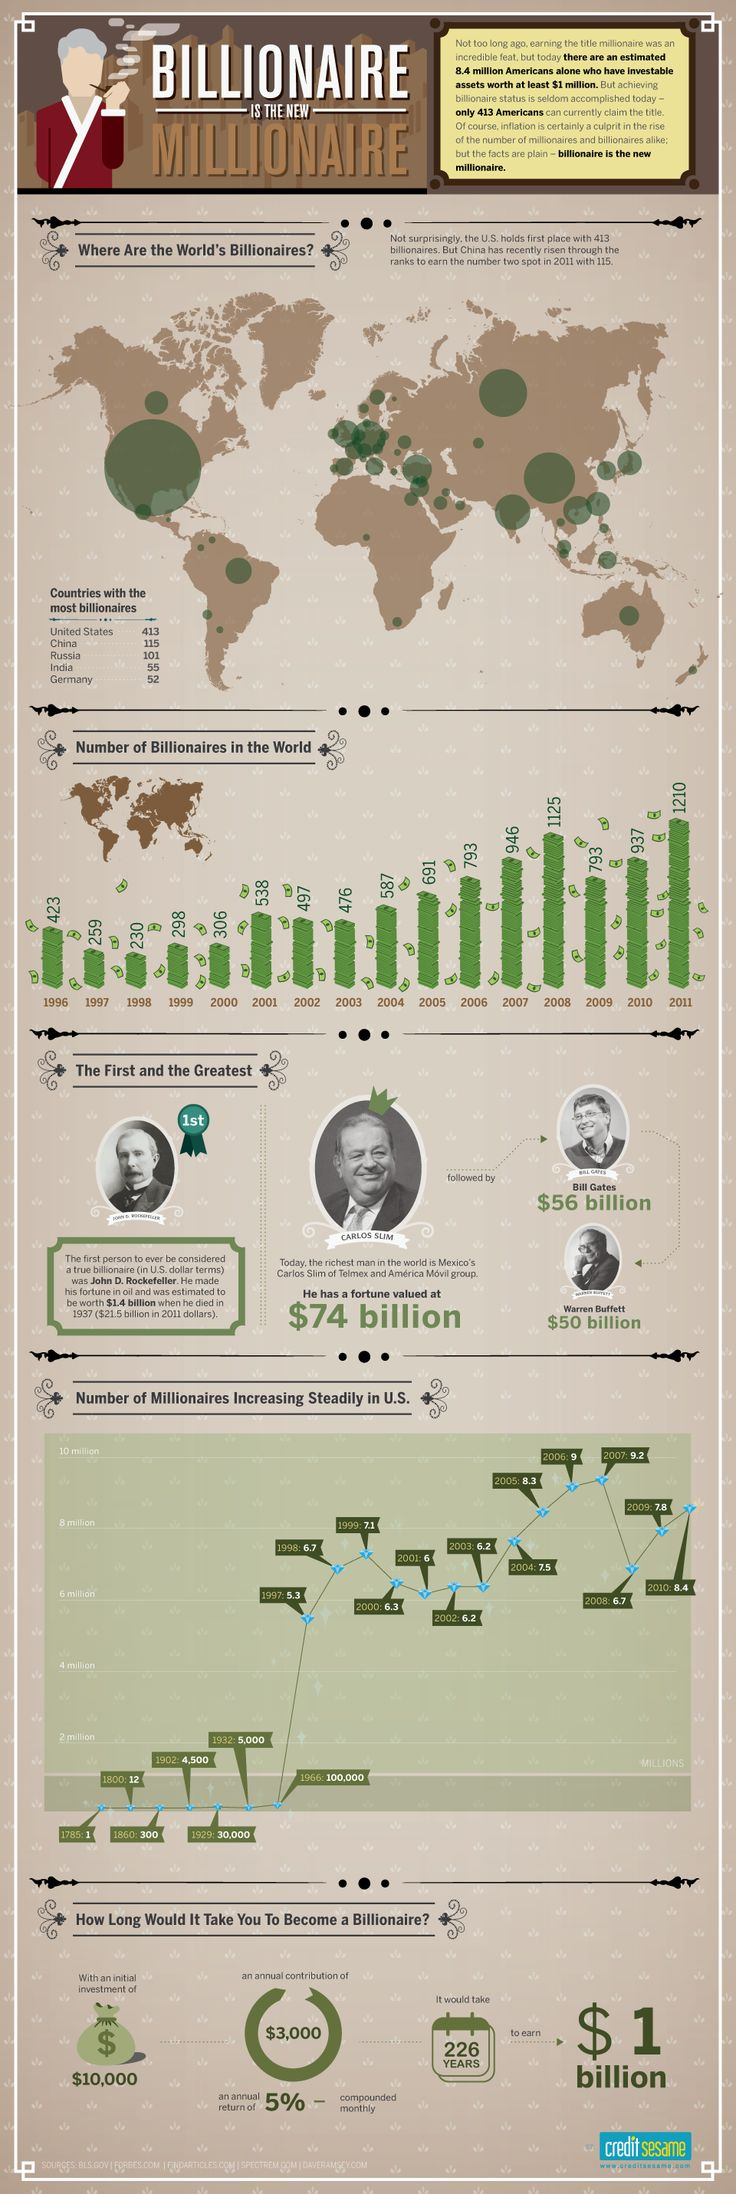 Infographic: Billionaire is the New Millionaire | The Collared Sheep - A Cubicle Community